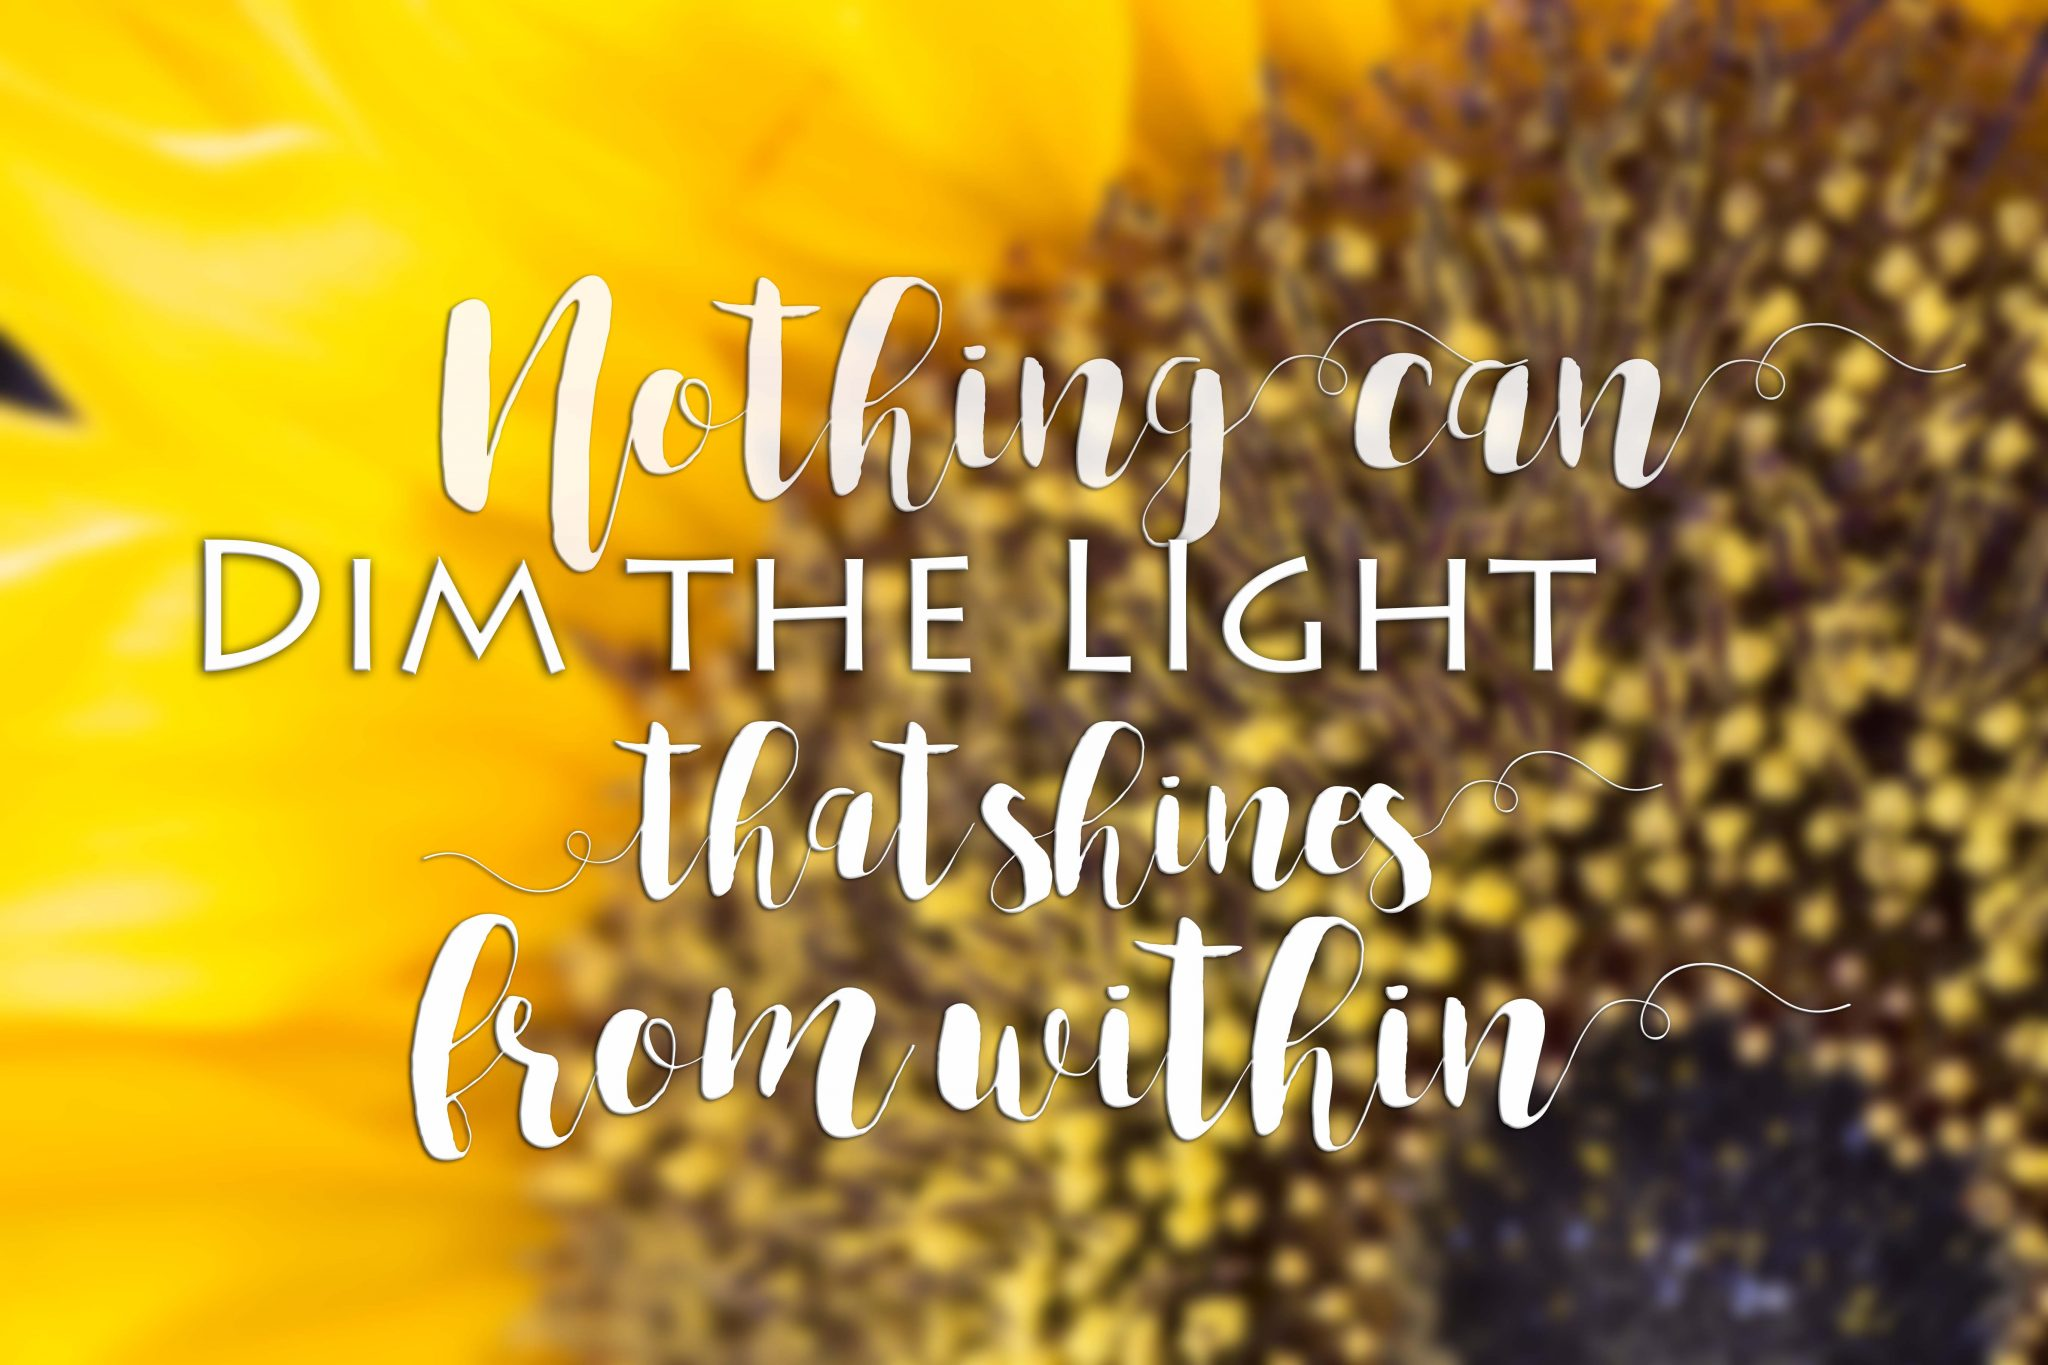 Nothing can dim the light that shines within